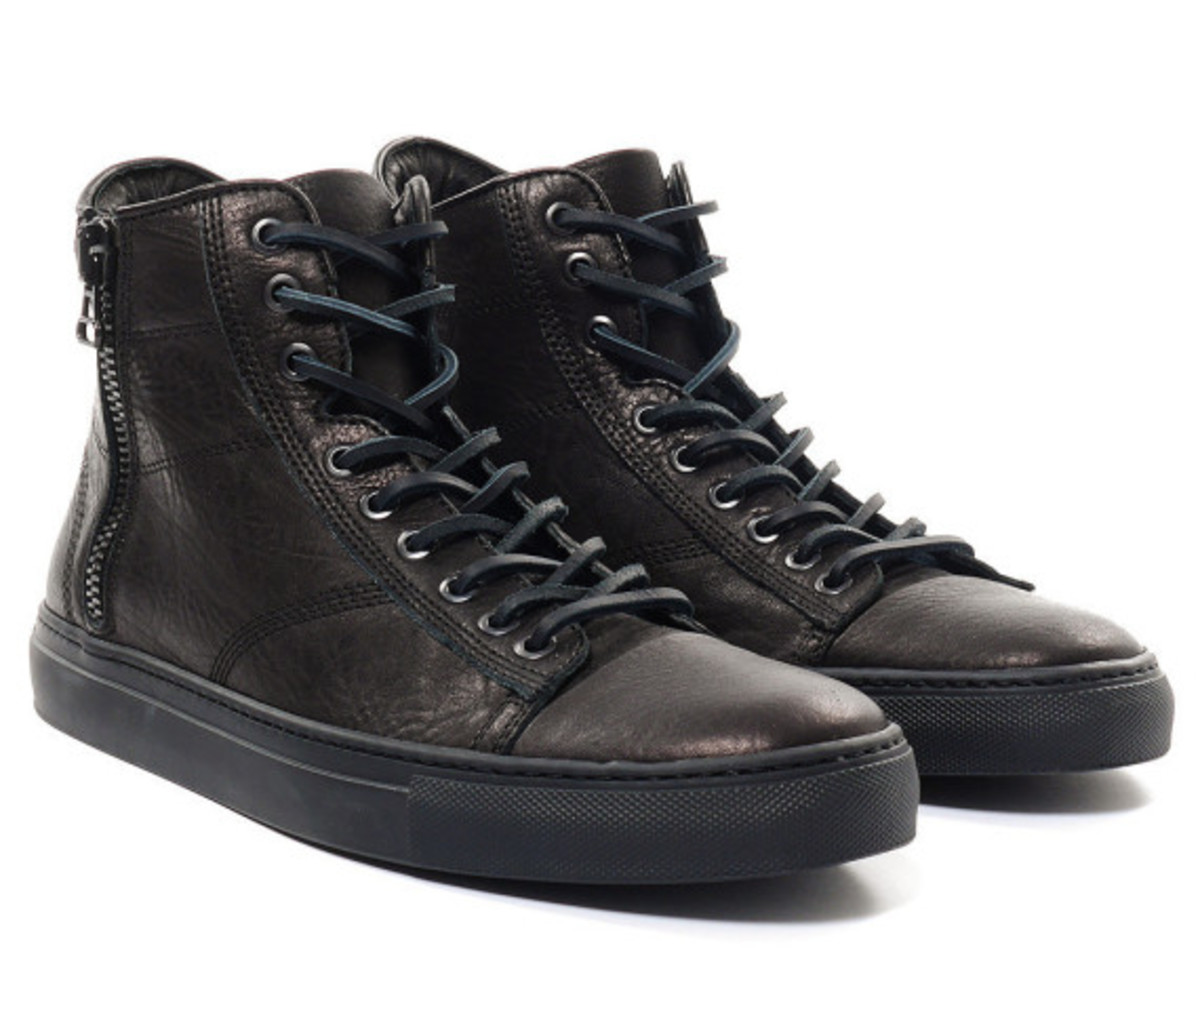 wings-and-horns-leather-hi-top-sneaker-03